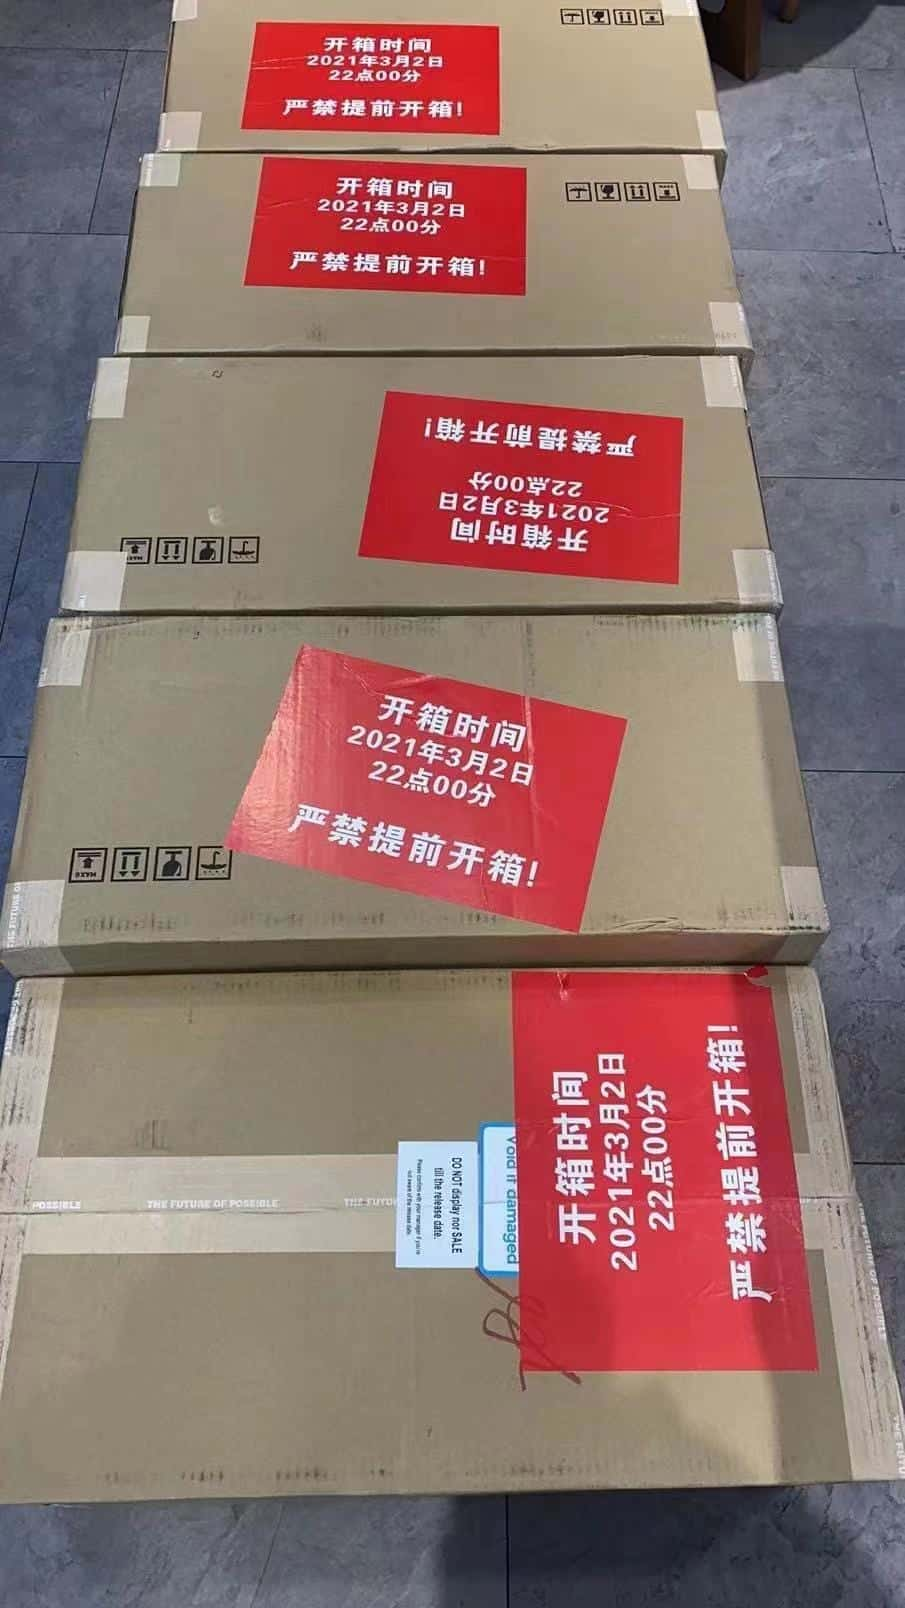 A photo that showed up on Twitter earlier today, seems to show boxes containing the DJI FPV drone lined up and ready to be displayed at a Chinese retailer.